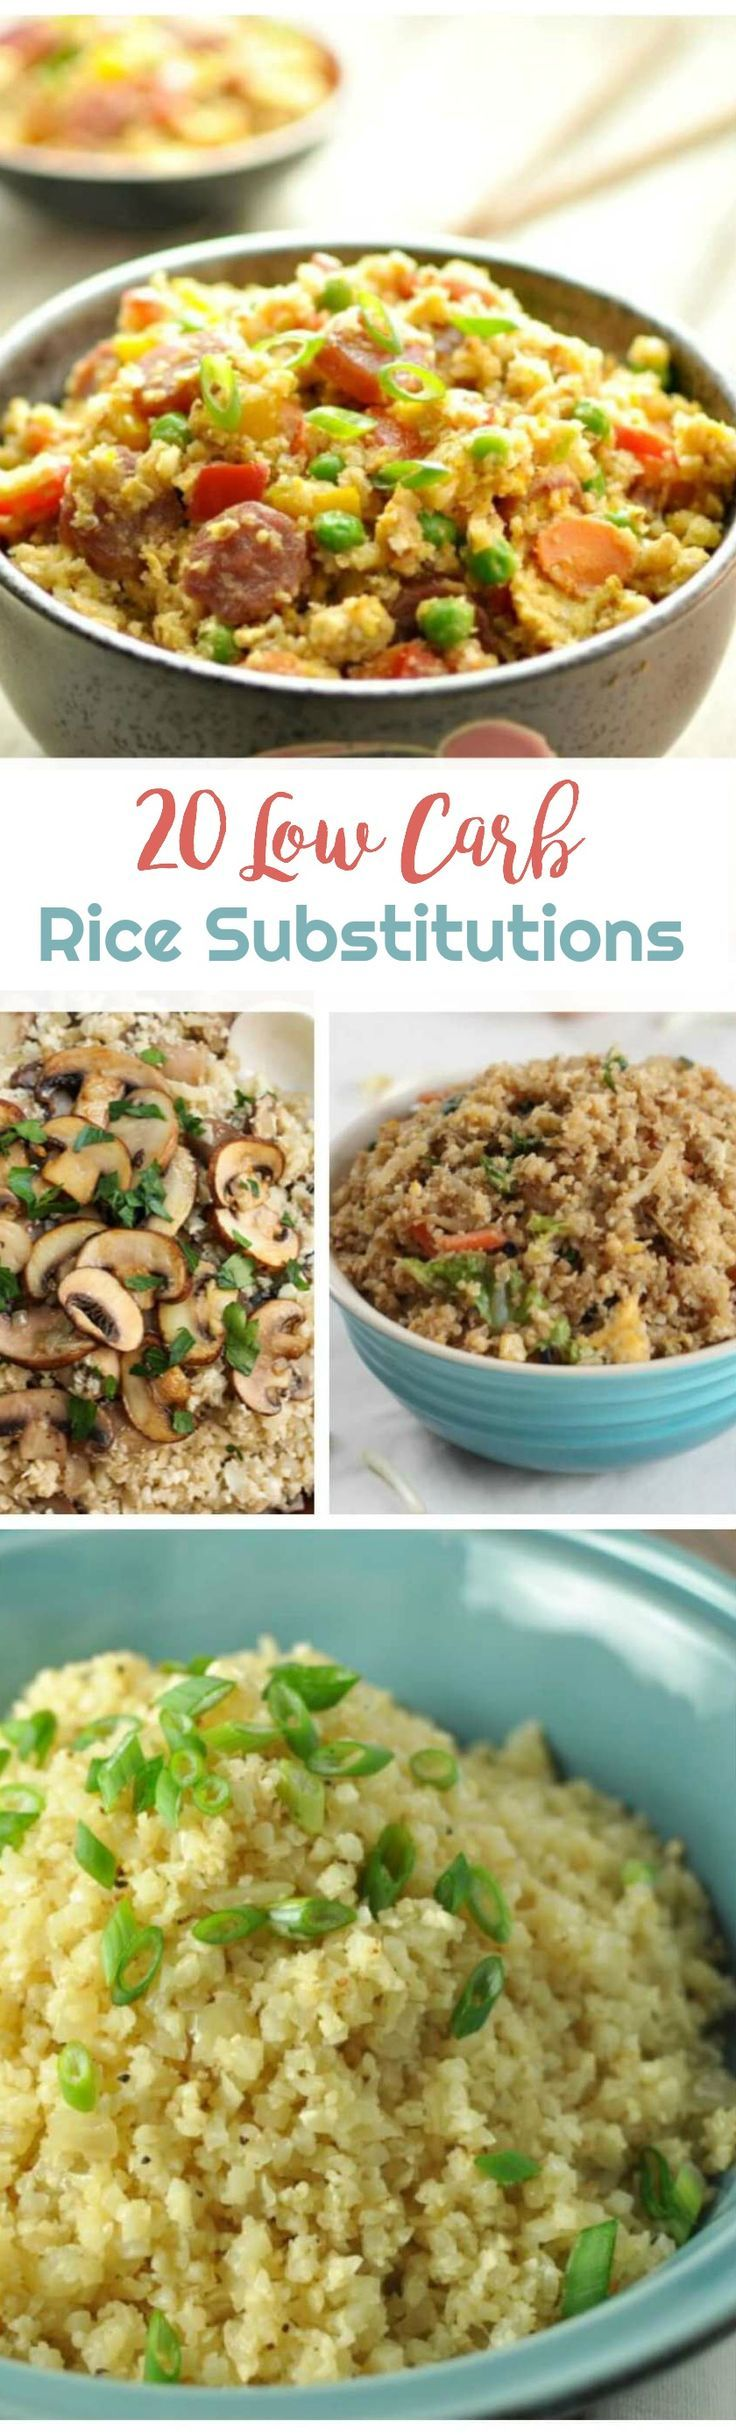 20 Low Carb Rice Substitutions